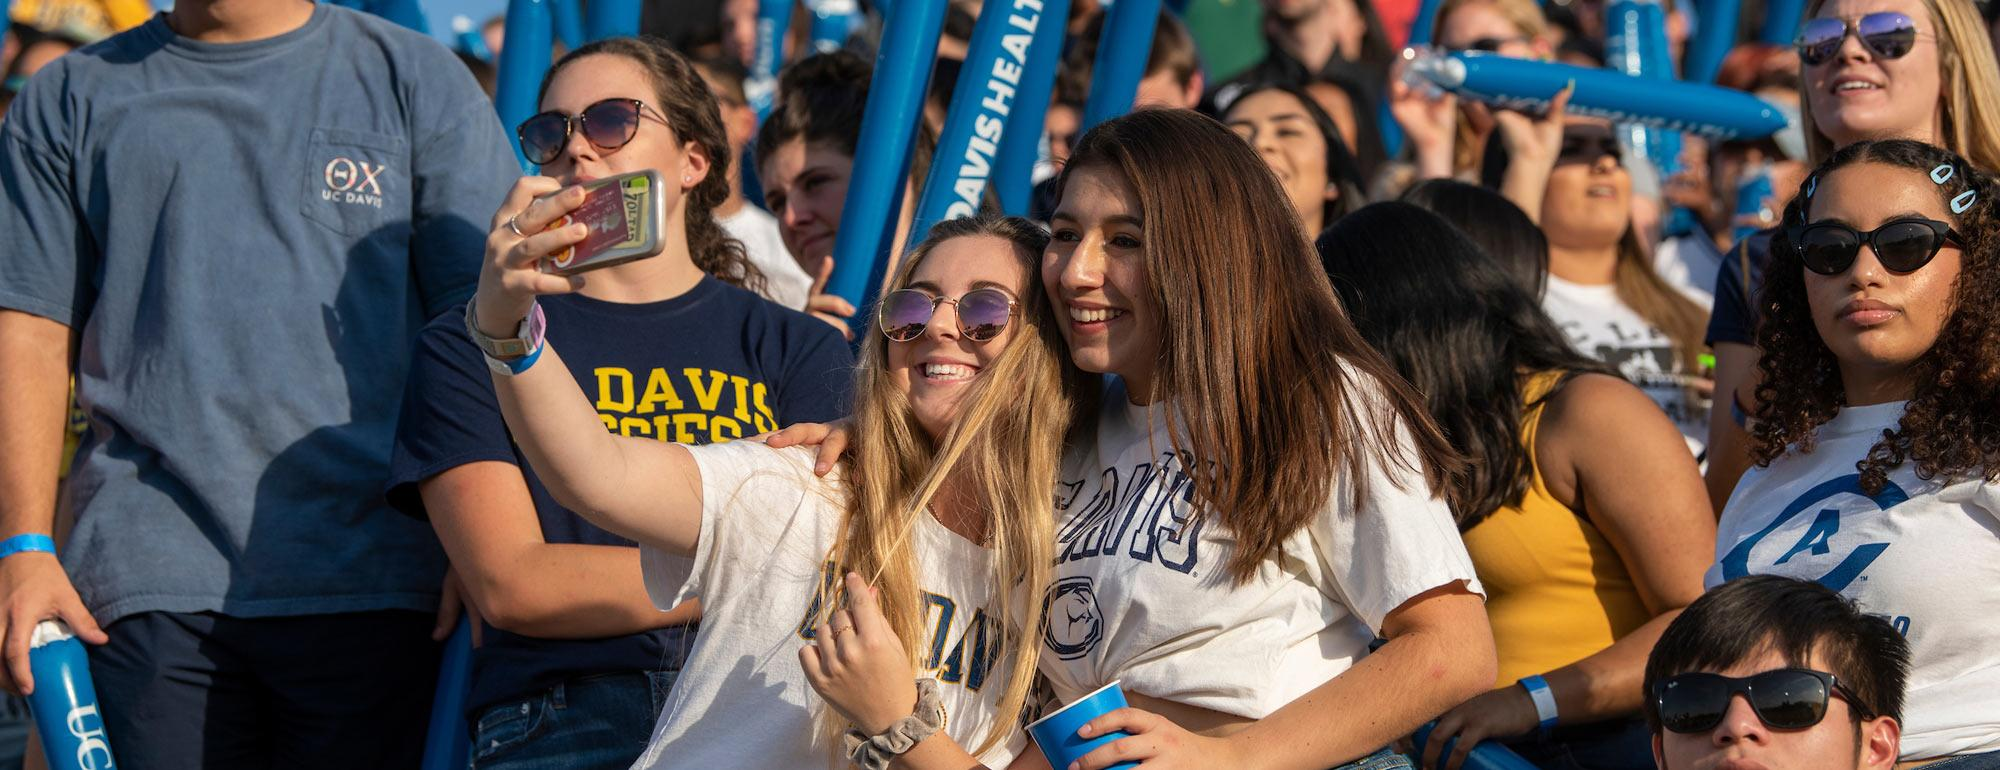 Two female students share a selfie in the crowd of a UC Davis football game.